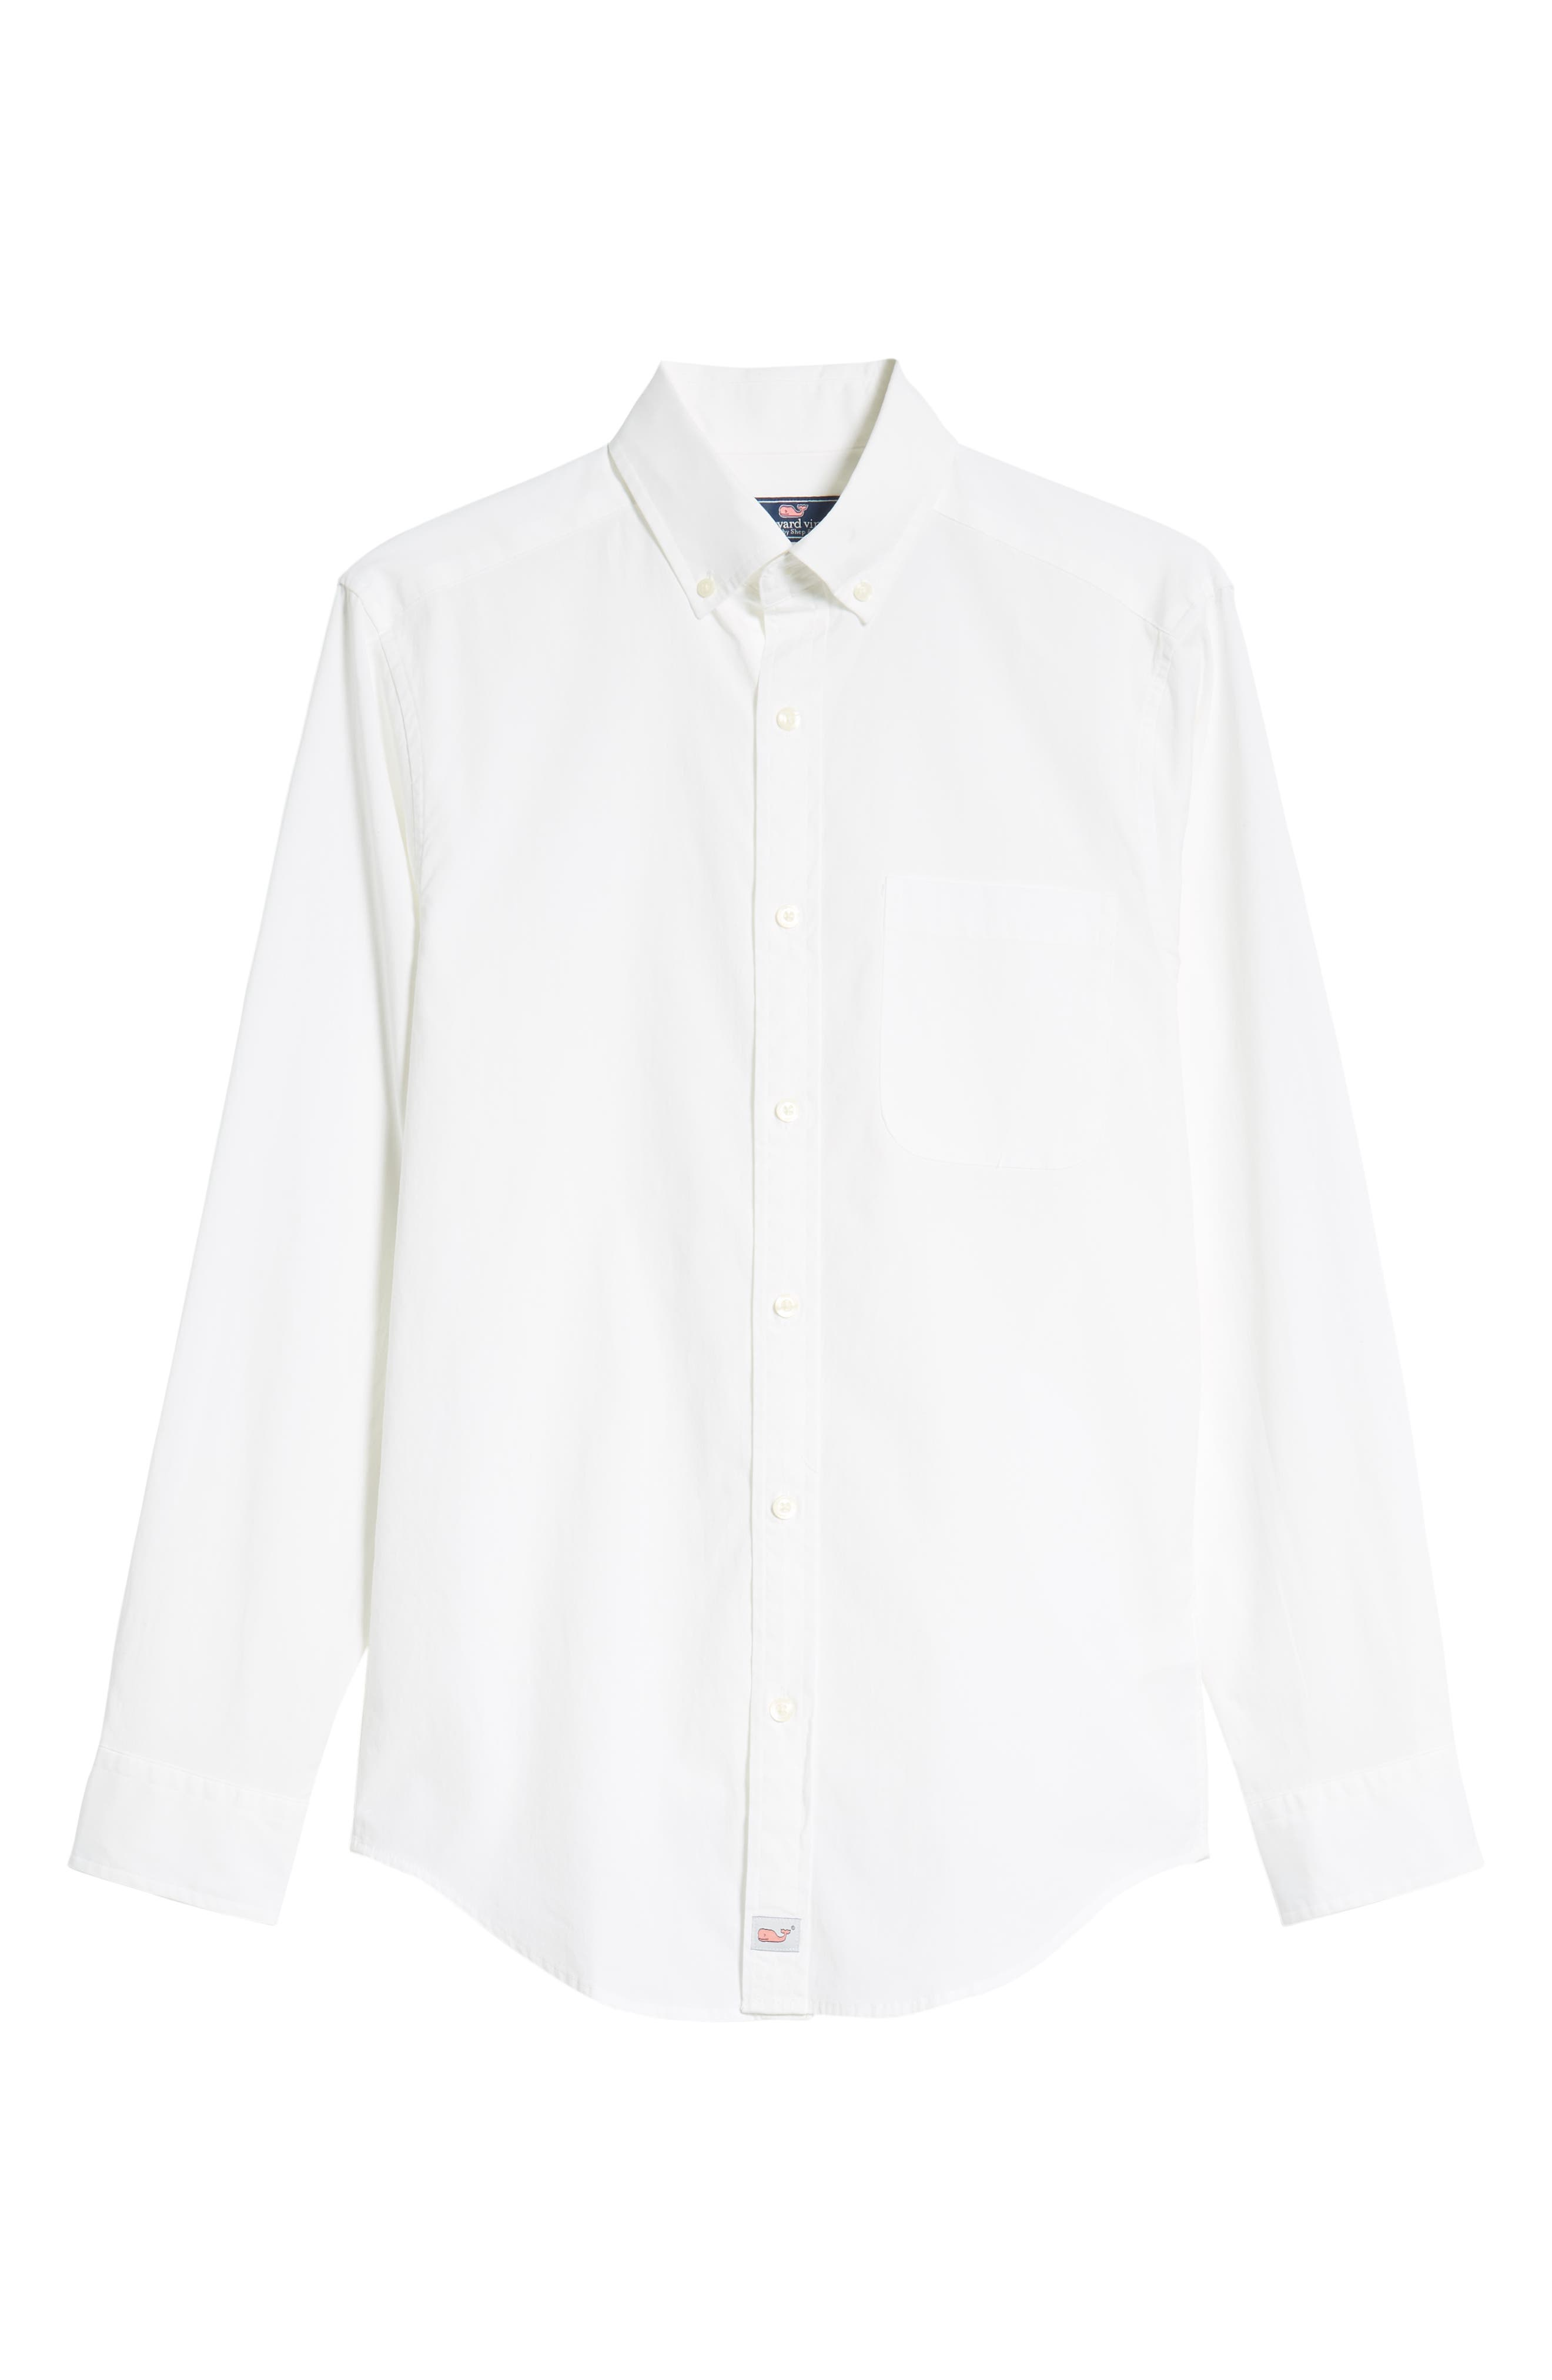 Eoe Murray Regular Fit Sport Shirt,                             Alternate thumbnail 5, color,                             WHITE CAP